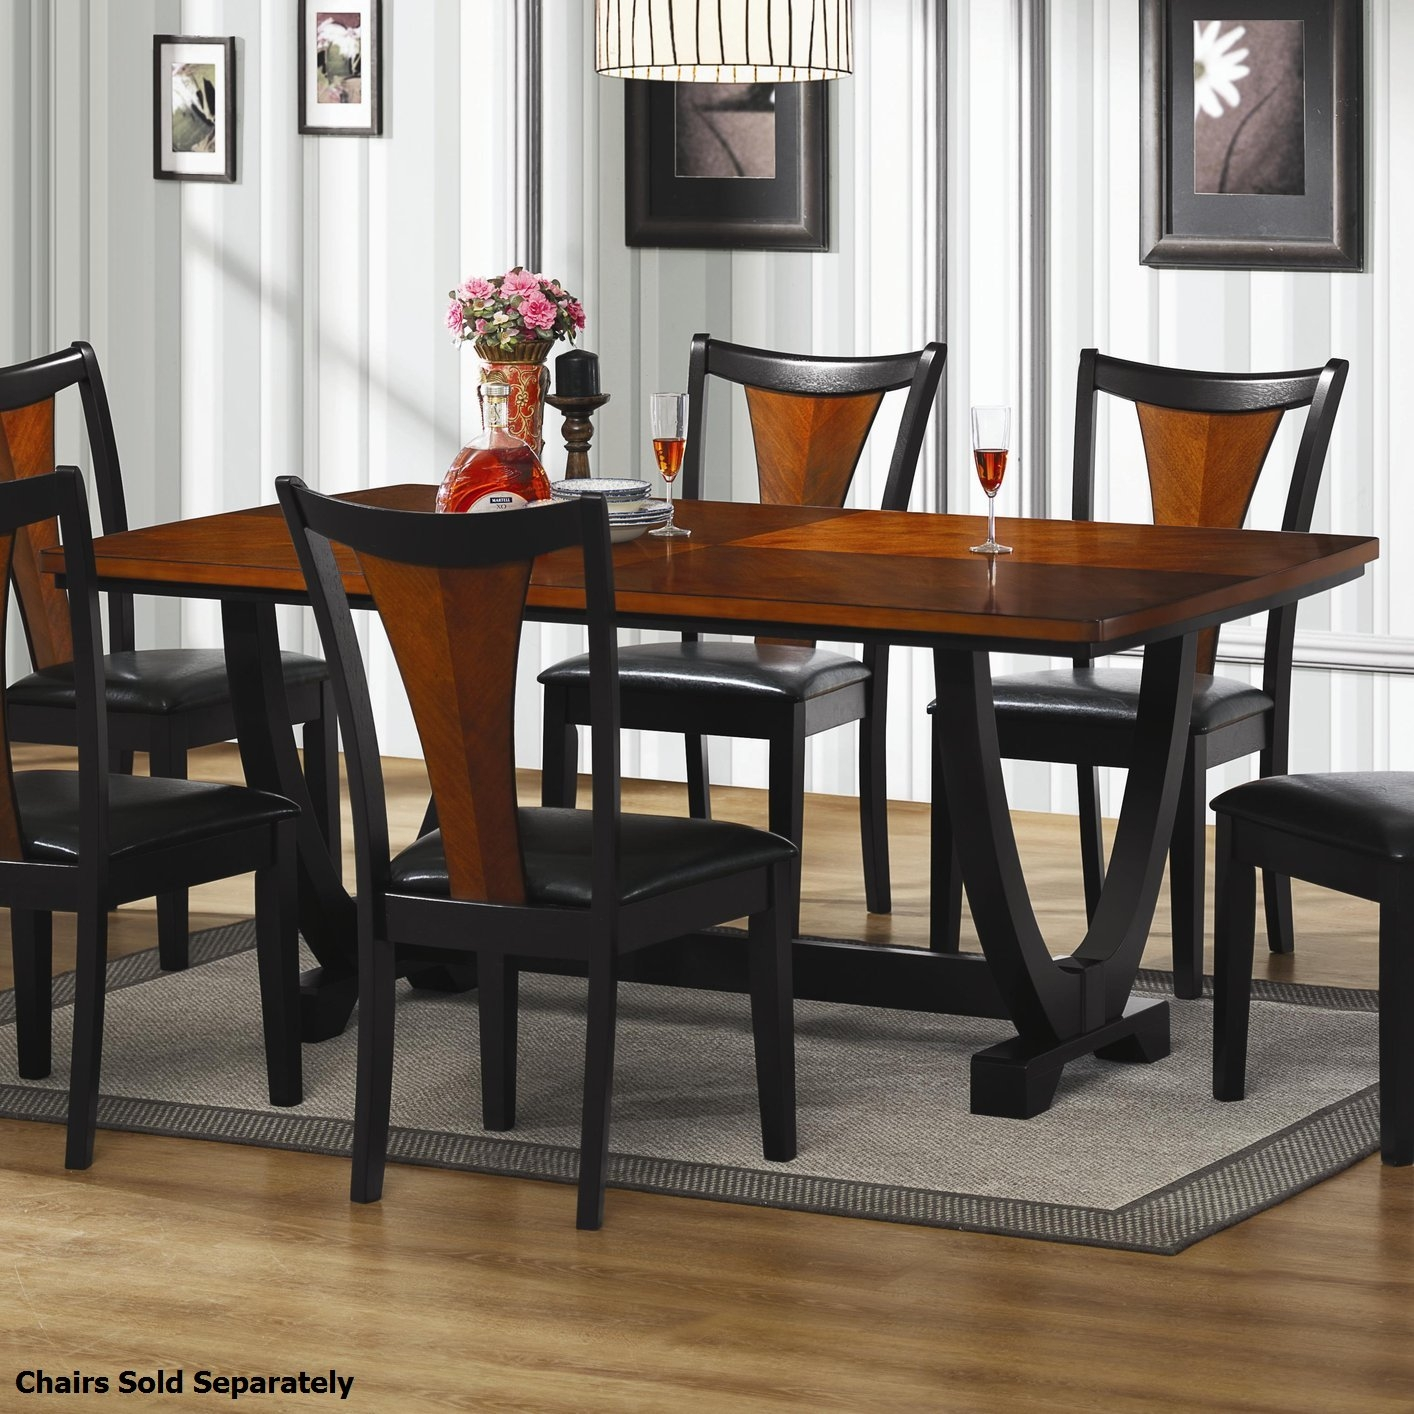 Dining Table With Sofa Chairs Lpuite For Dining Sofa Chairs (View 7 of 15)